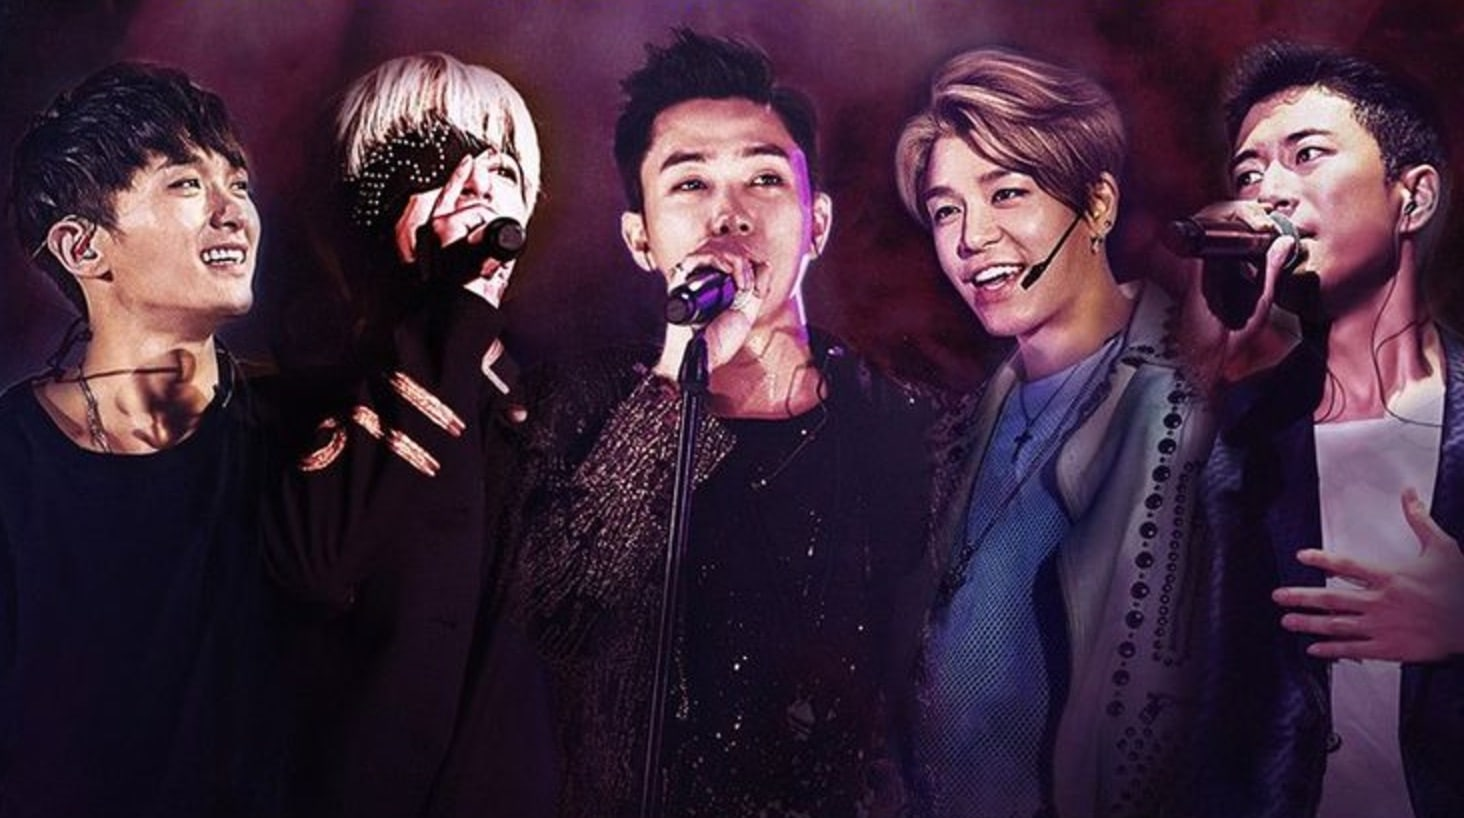 SECHSKIES Announces Official Release Date For 20th Anniversary Album